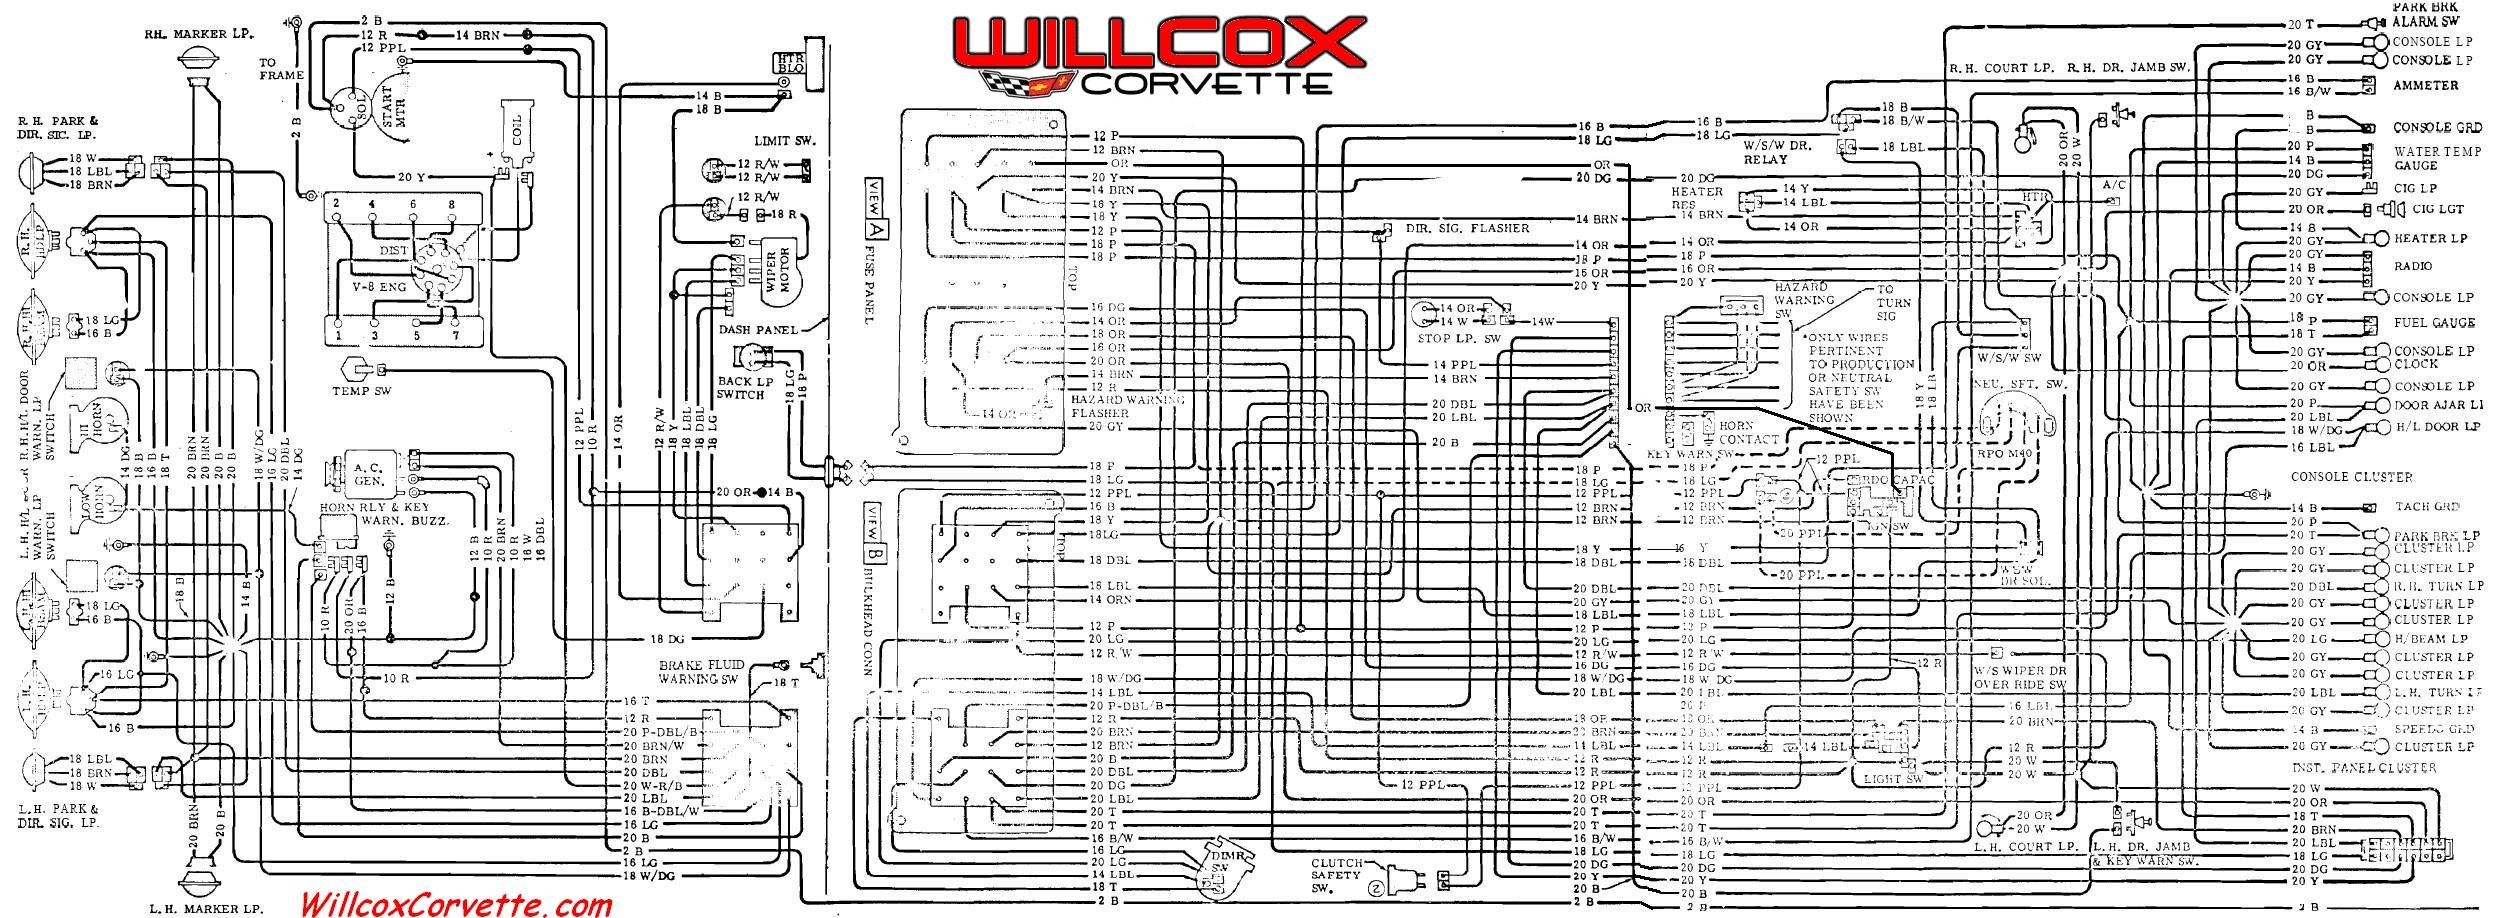 Citroen C3 2007 Wiring Diagram - Wiring Diagram All pale-paper -  pale-paper.huevoprint.it | Citroen C3 2007 Wiring Diagram |  | Huevoprint